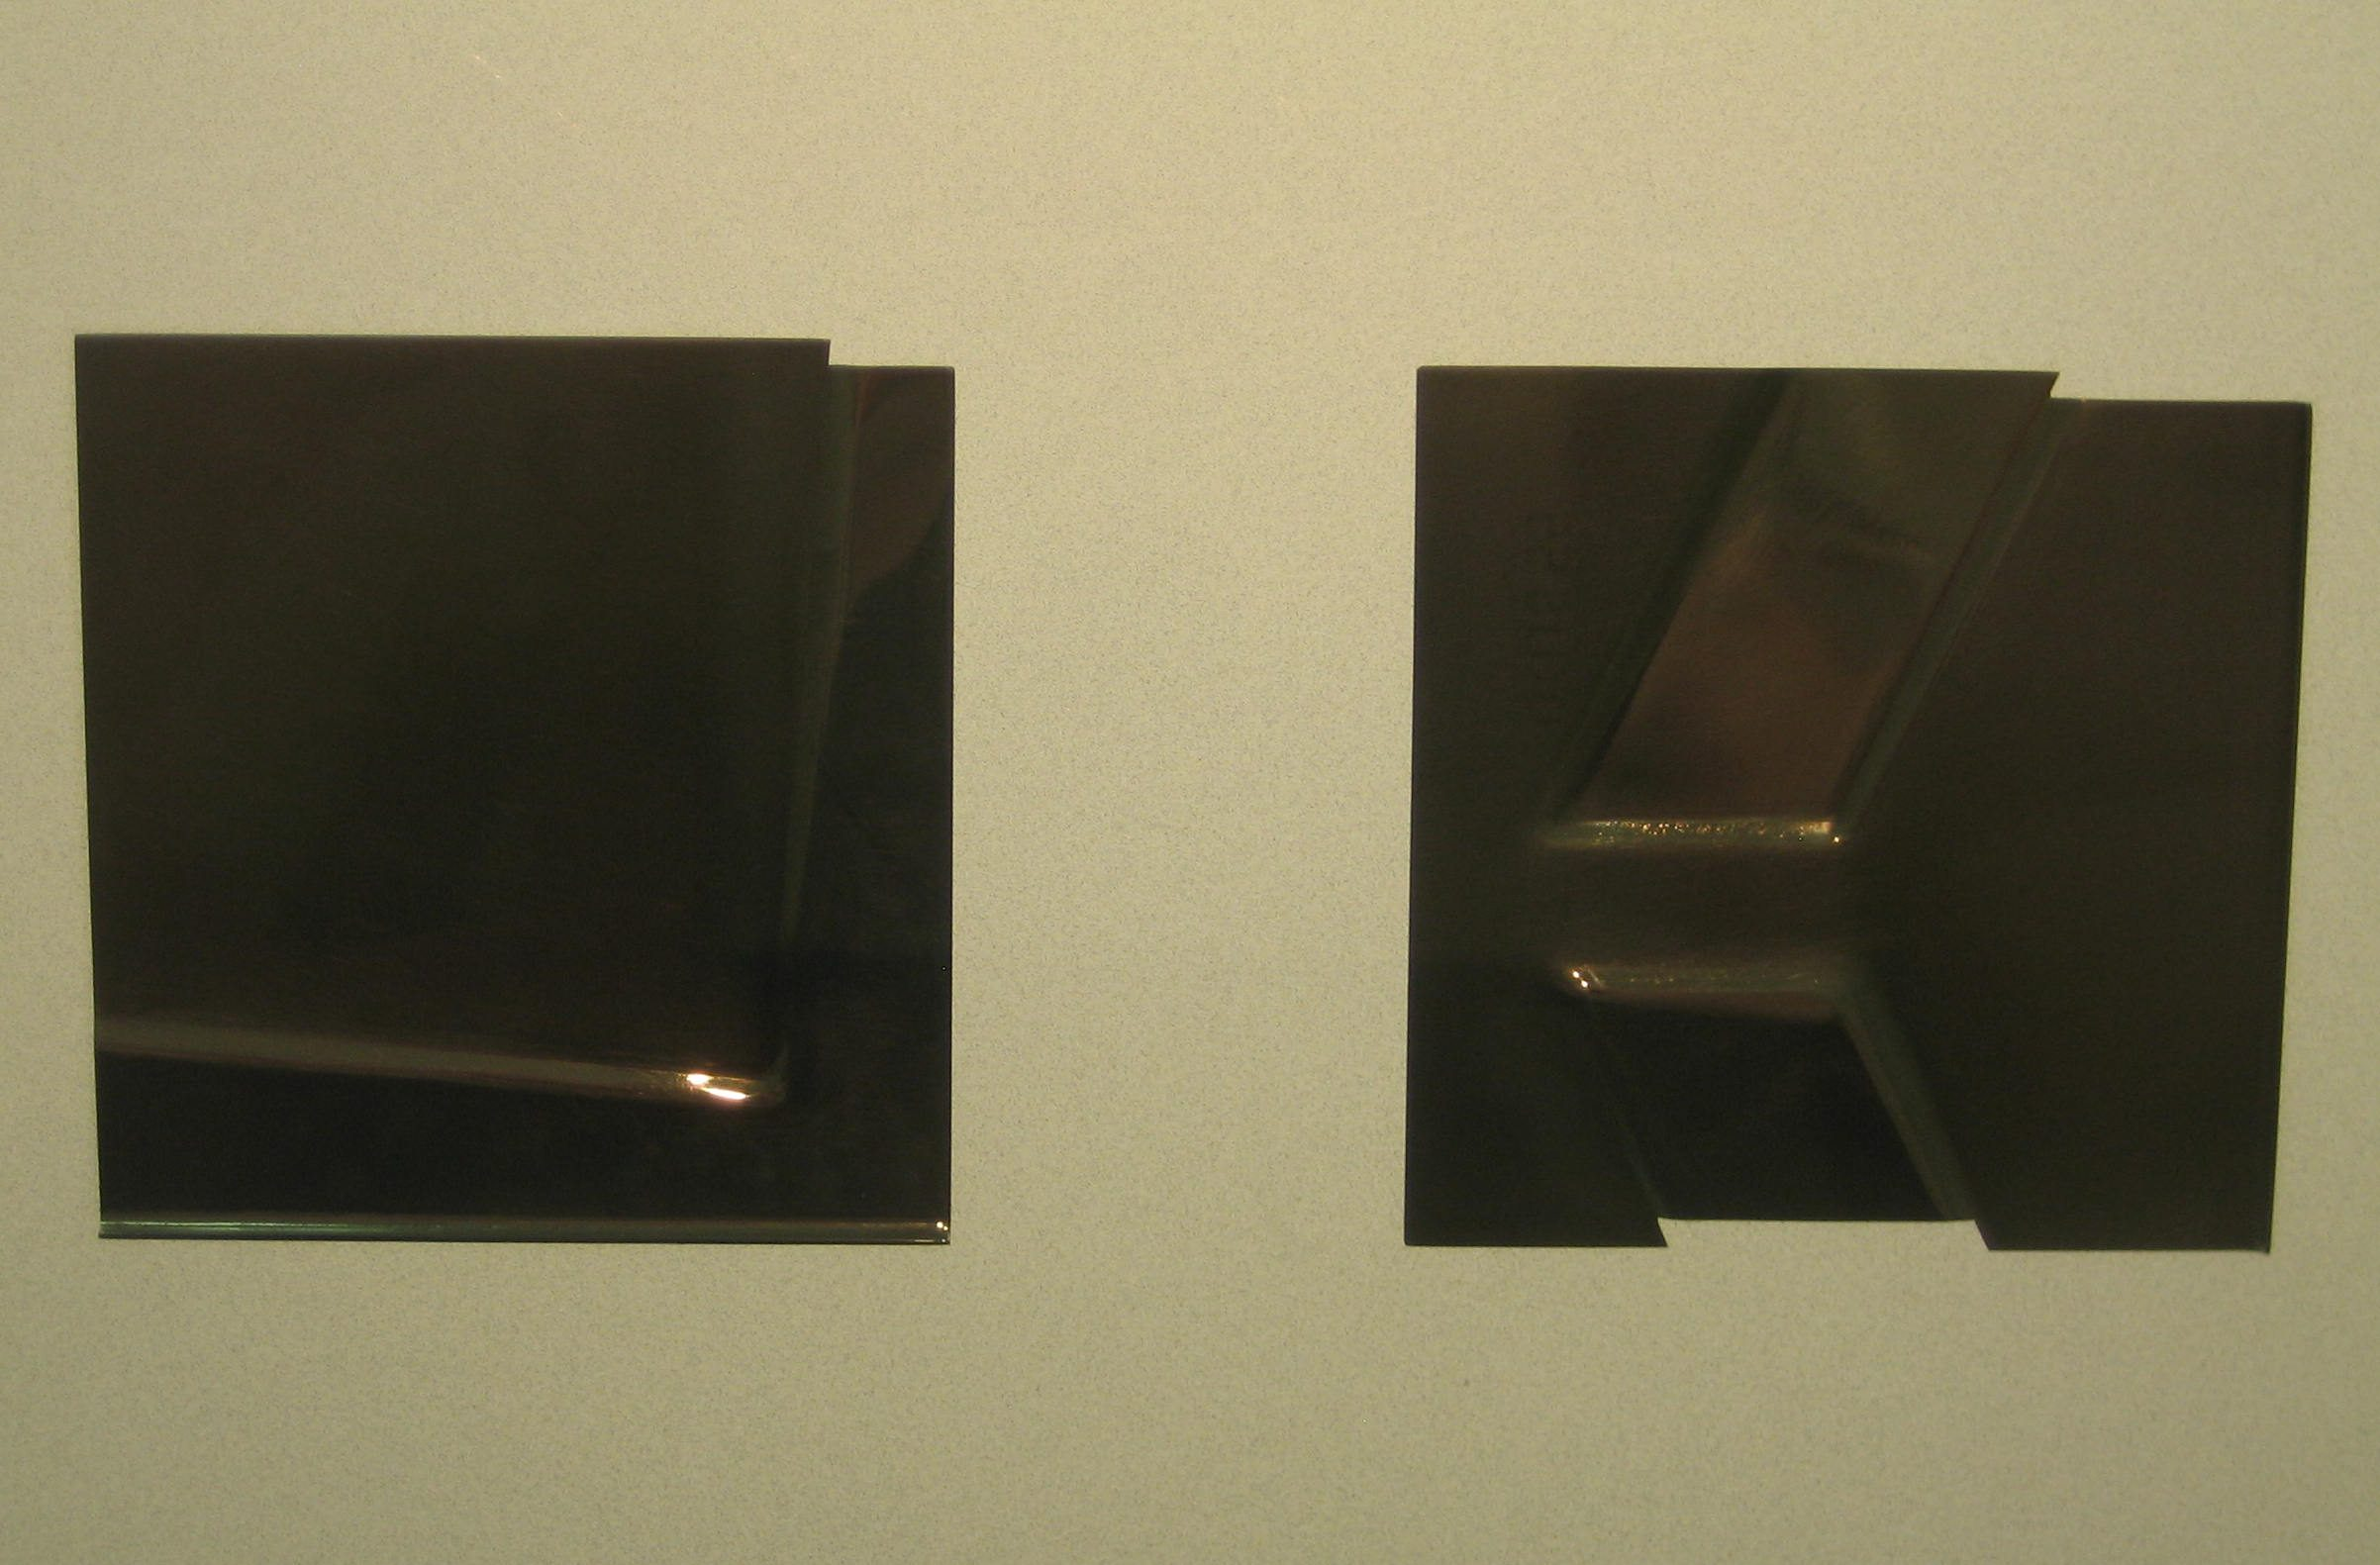 Helmut Senf, broches, 1984. Collectie Grassimuseum. Foto Esther Doornbusch, mei 2018, CC BY 4.0